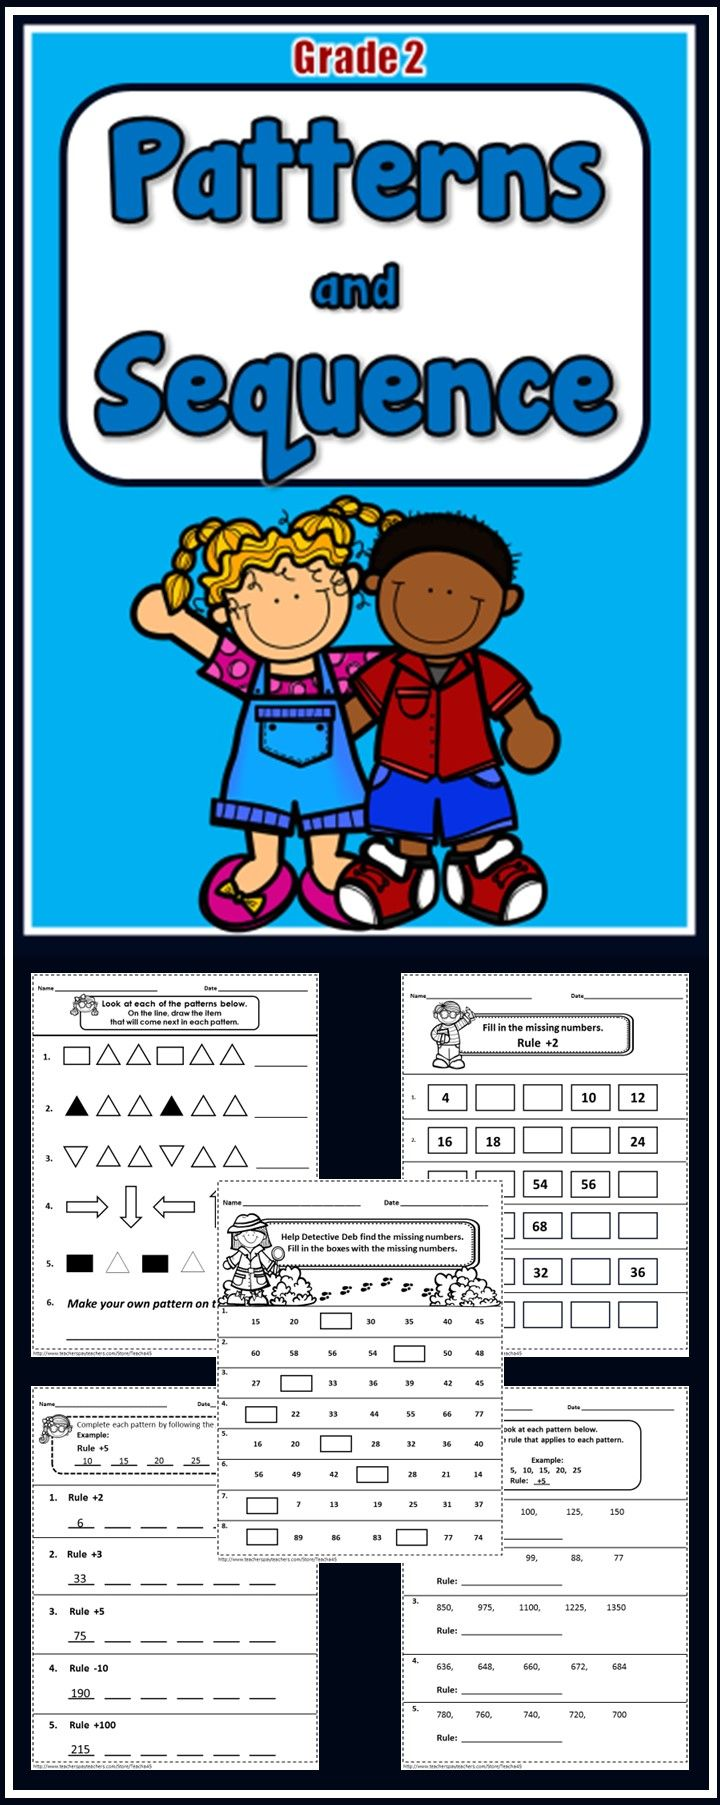 Patterns and Number Sequence - 29 No prep printables - Grades 2-3